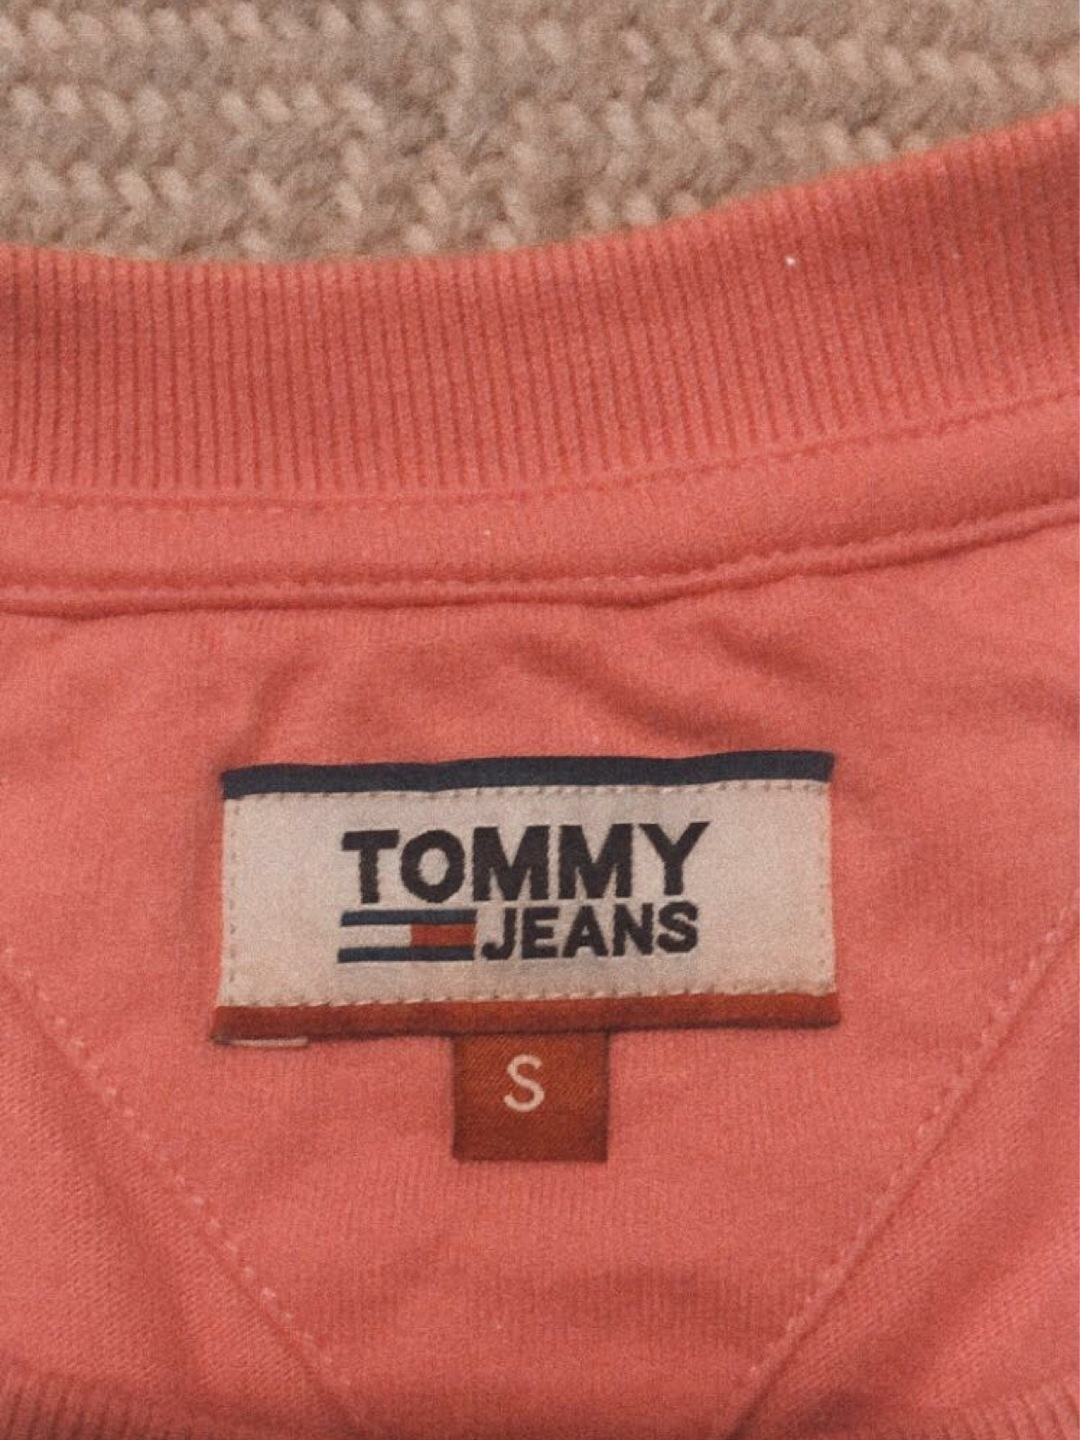 Damers toppe og t-shirts - TOMMY JEANS photo 3